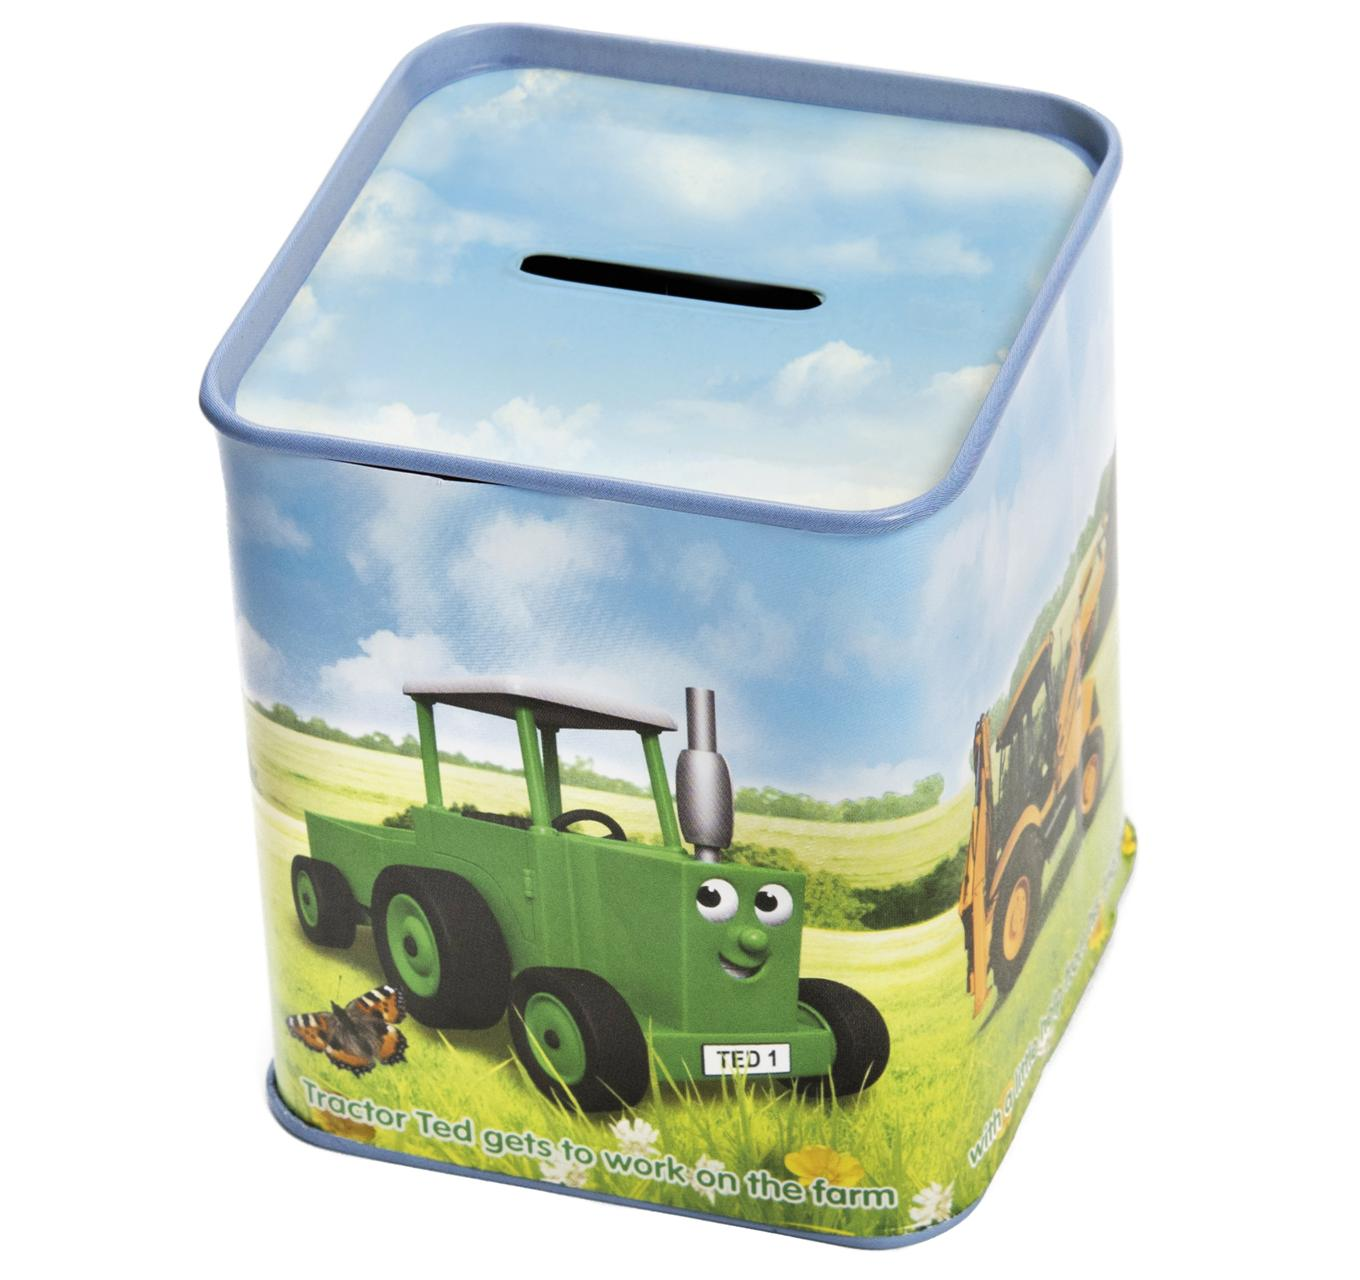 Tractor Ted Money Box